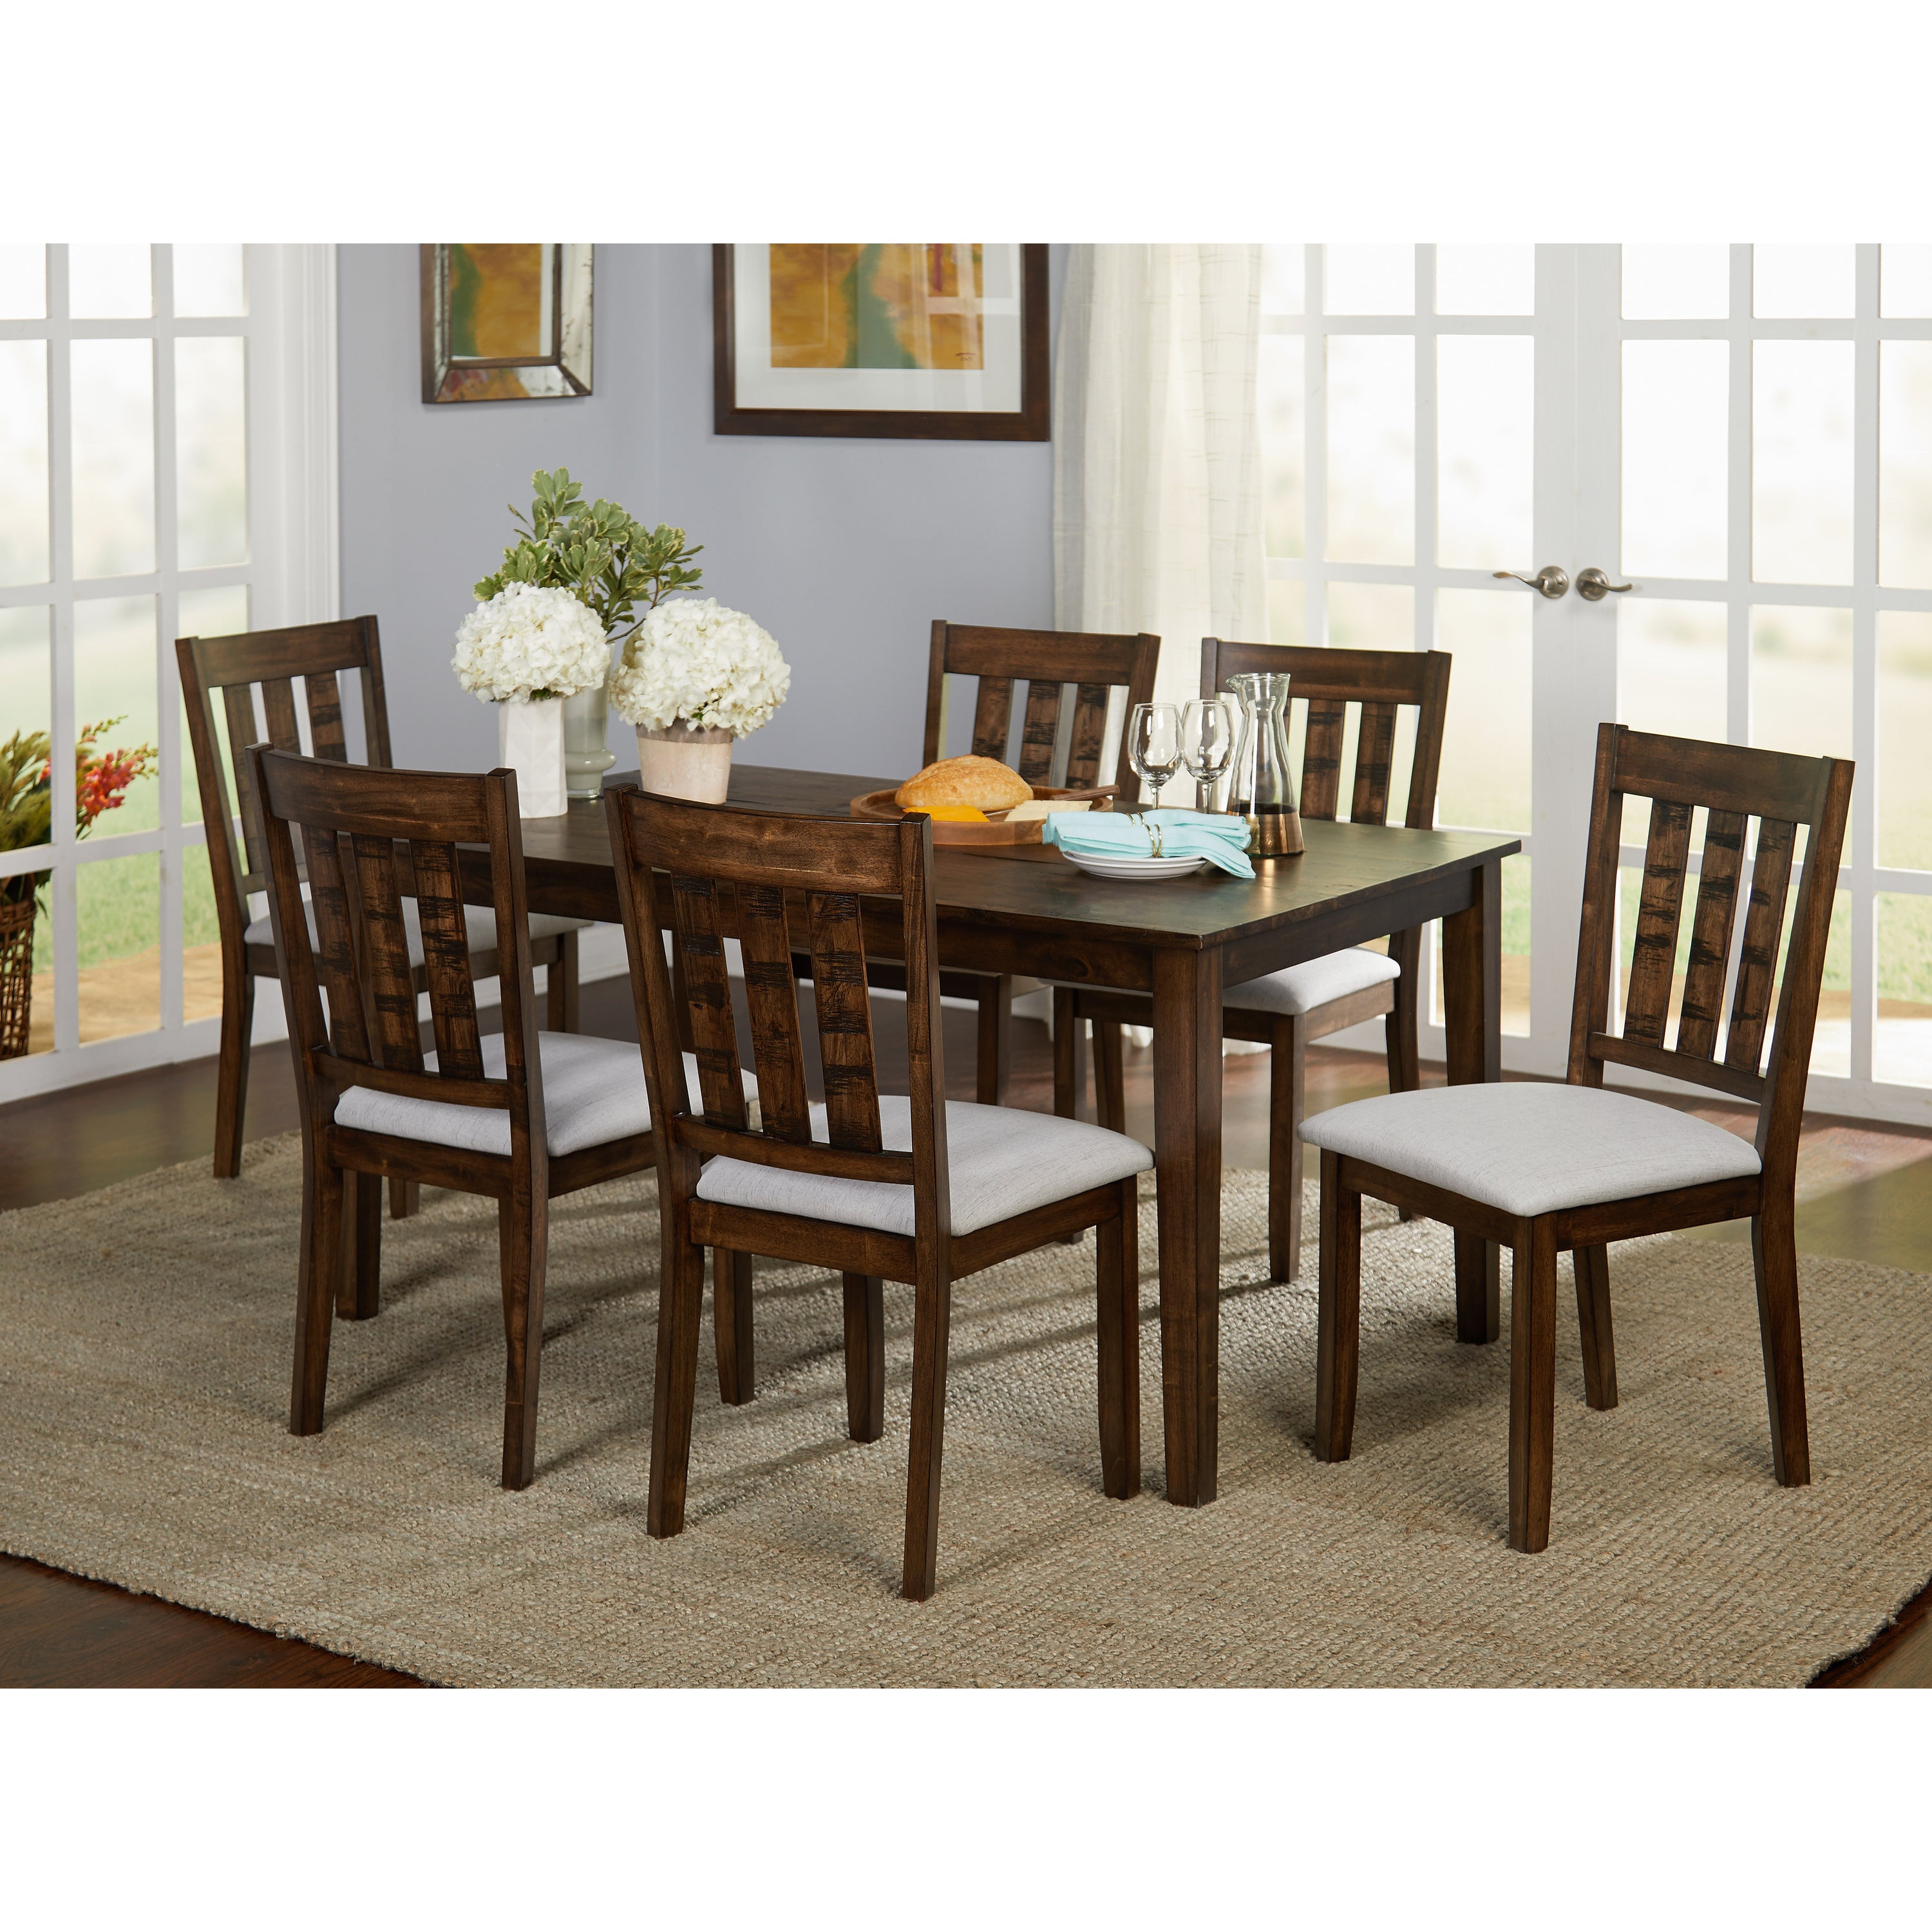 Preferred Springfield 3 Piece Dining Sets Throughout Buy Farmhouse Kitchen & Dining Room Tables Online At Overstock (#10 of 20)